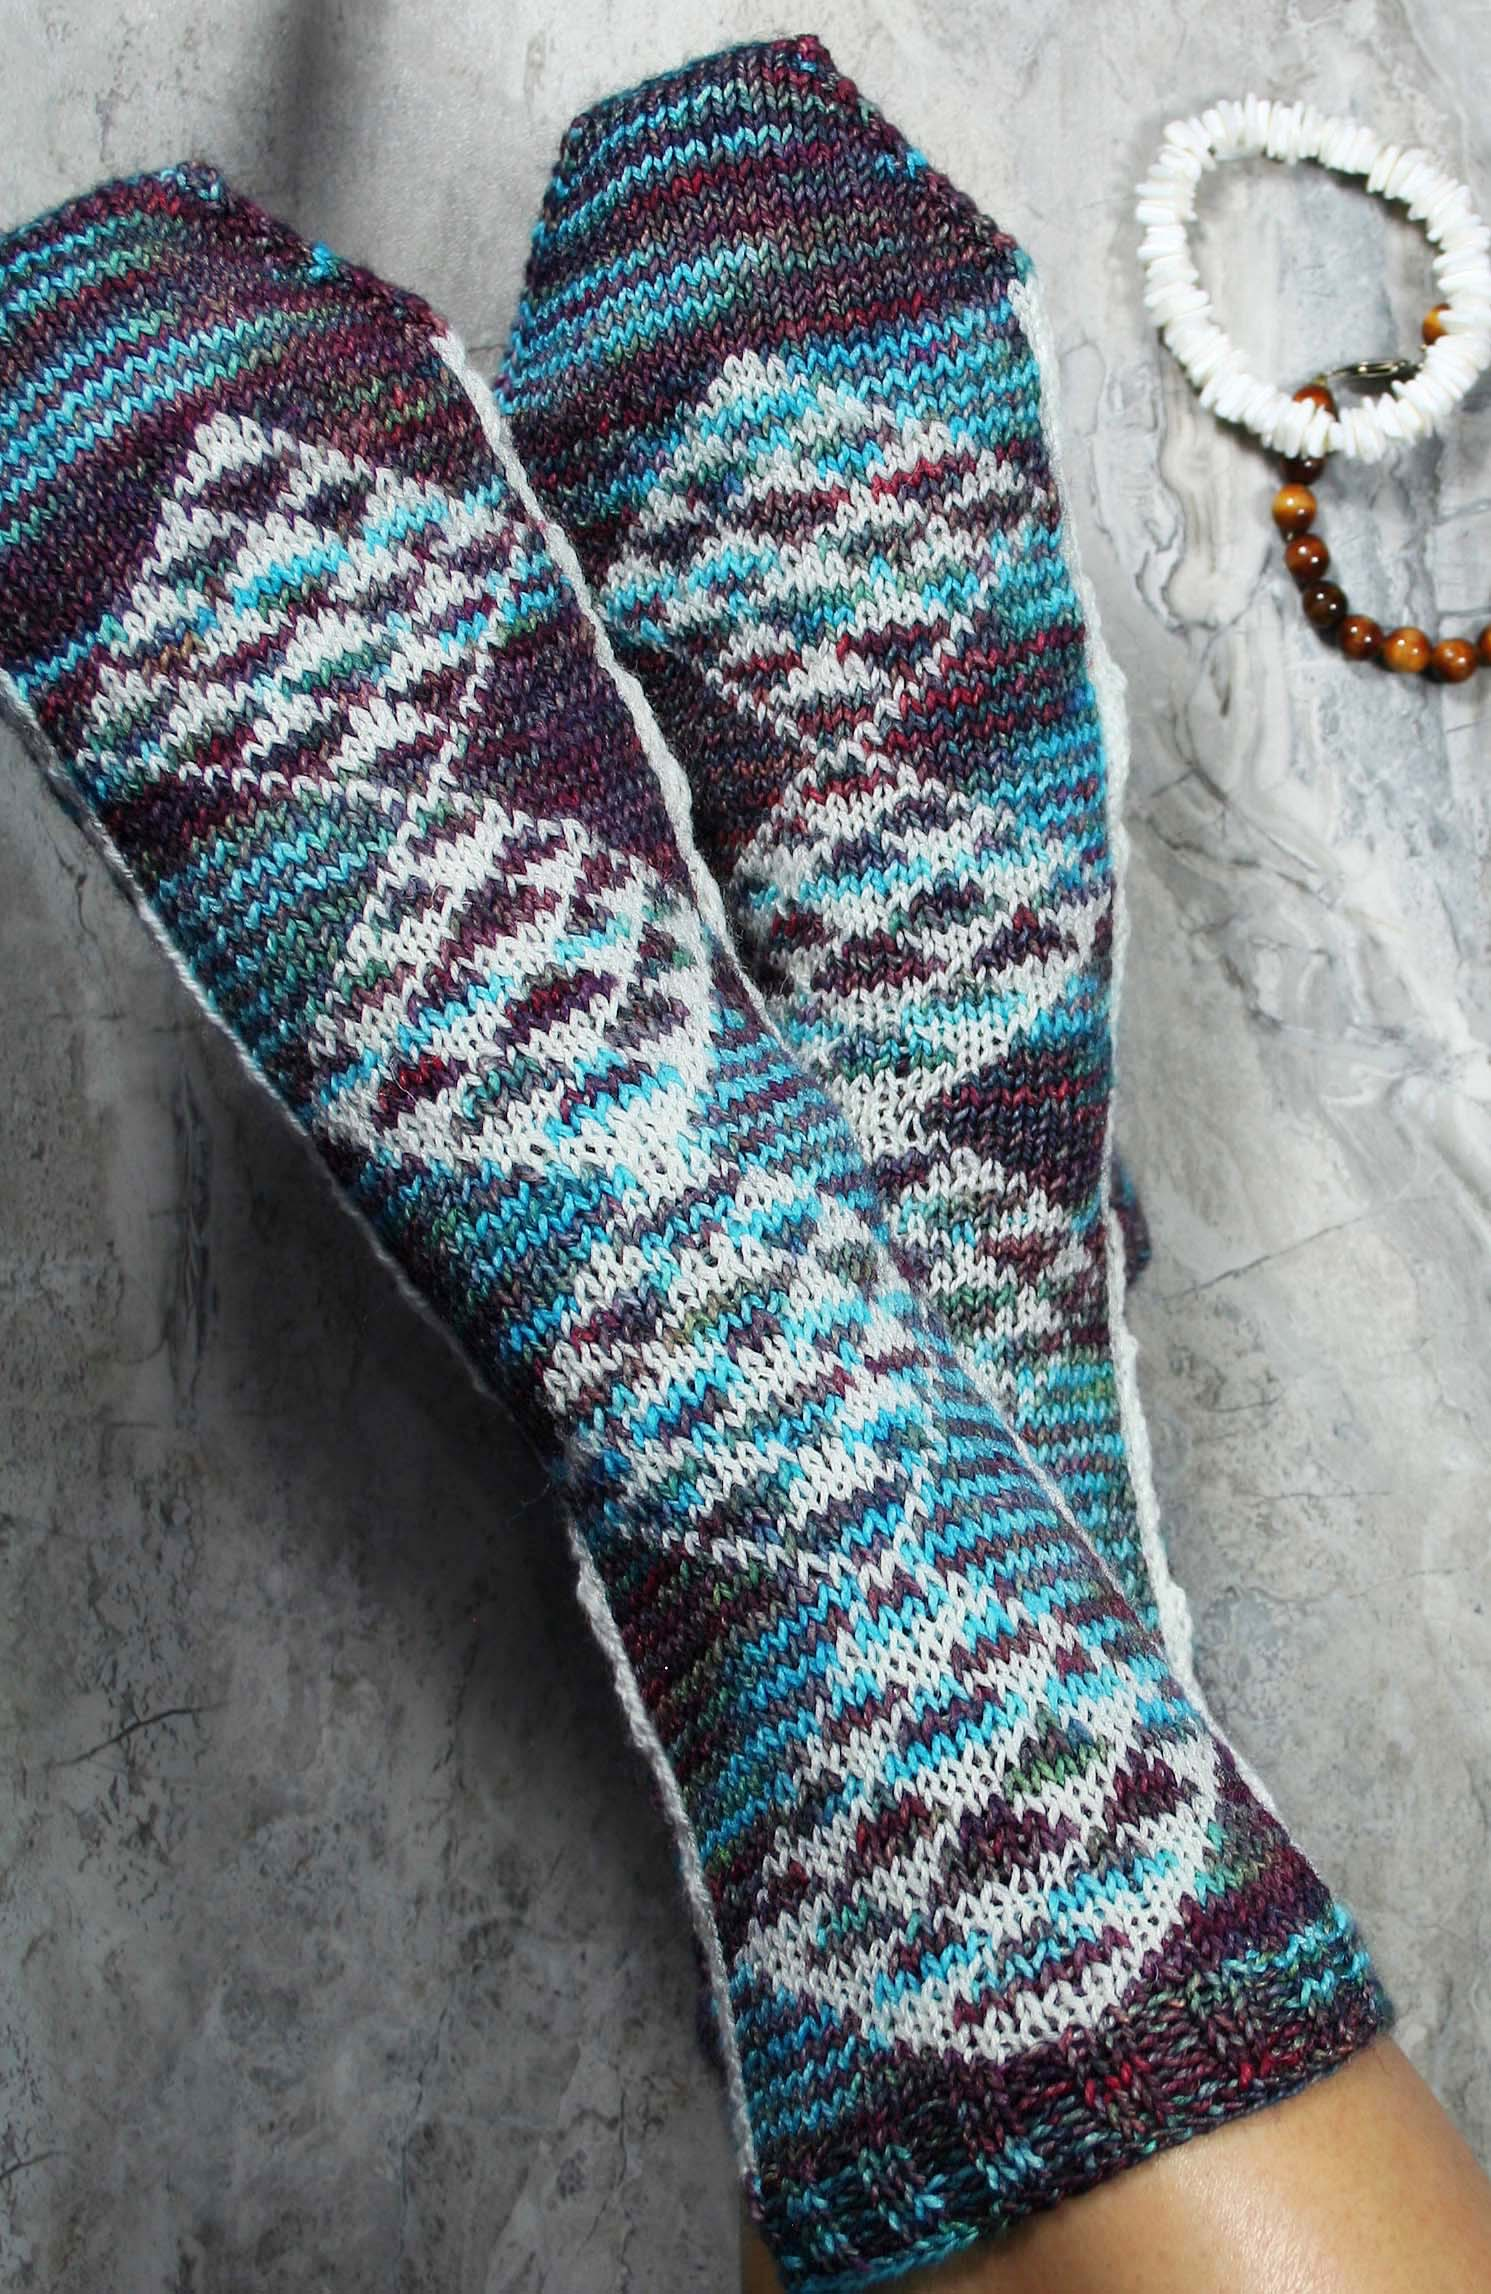 KNITTING PATTERN for Hawaiian Kapa Socks -  Charted Colorwork Sock pattern - digital download